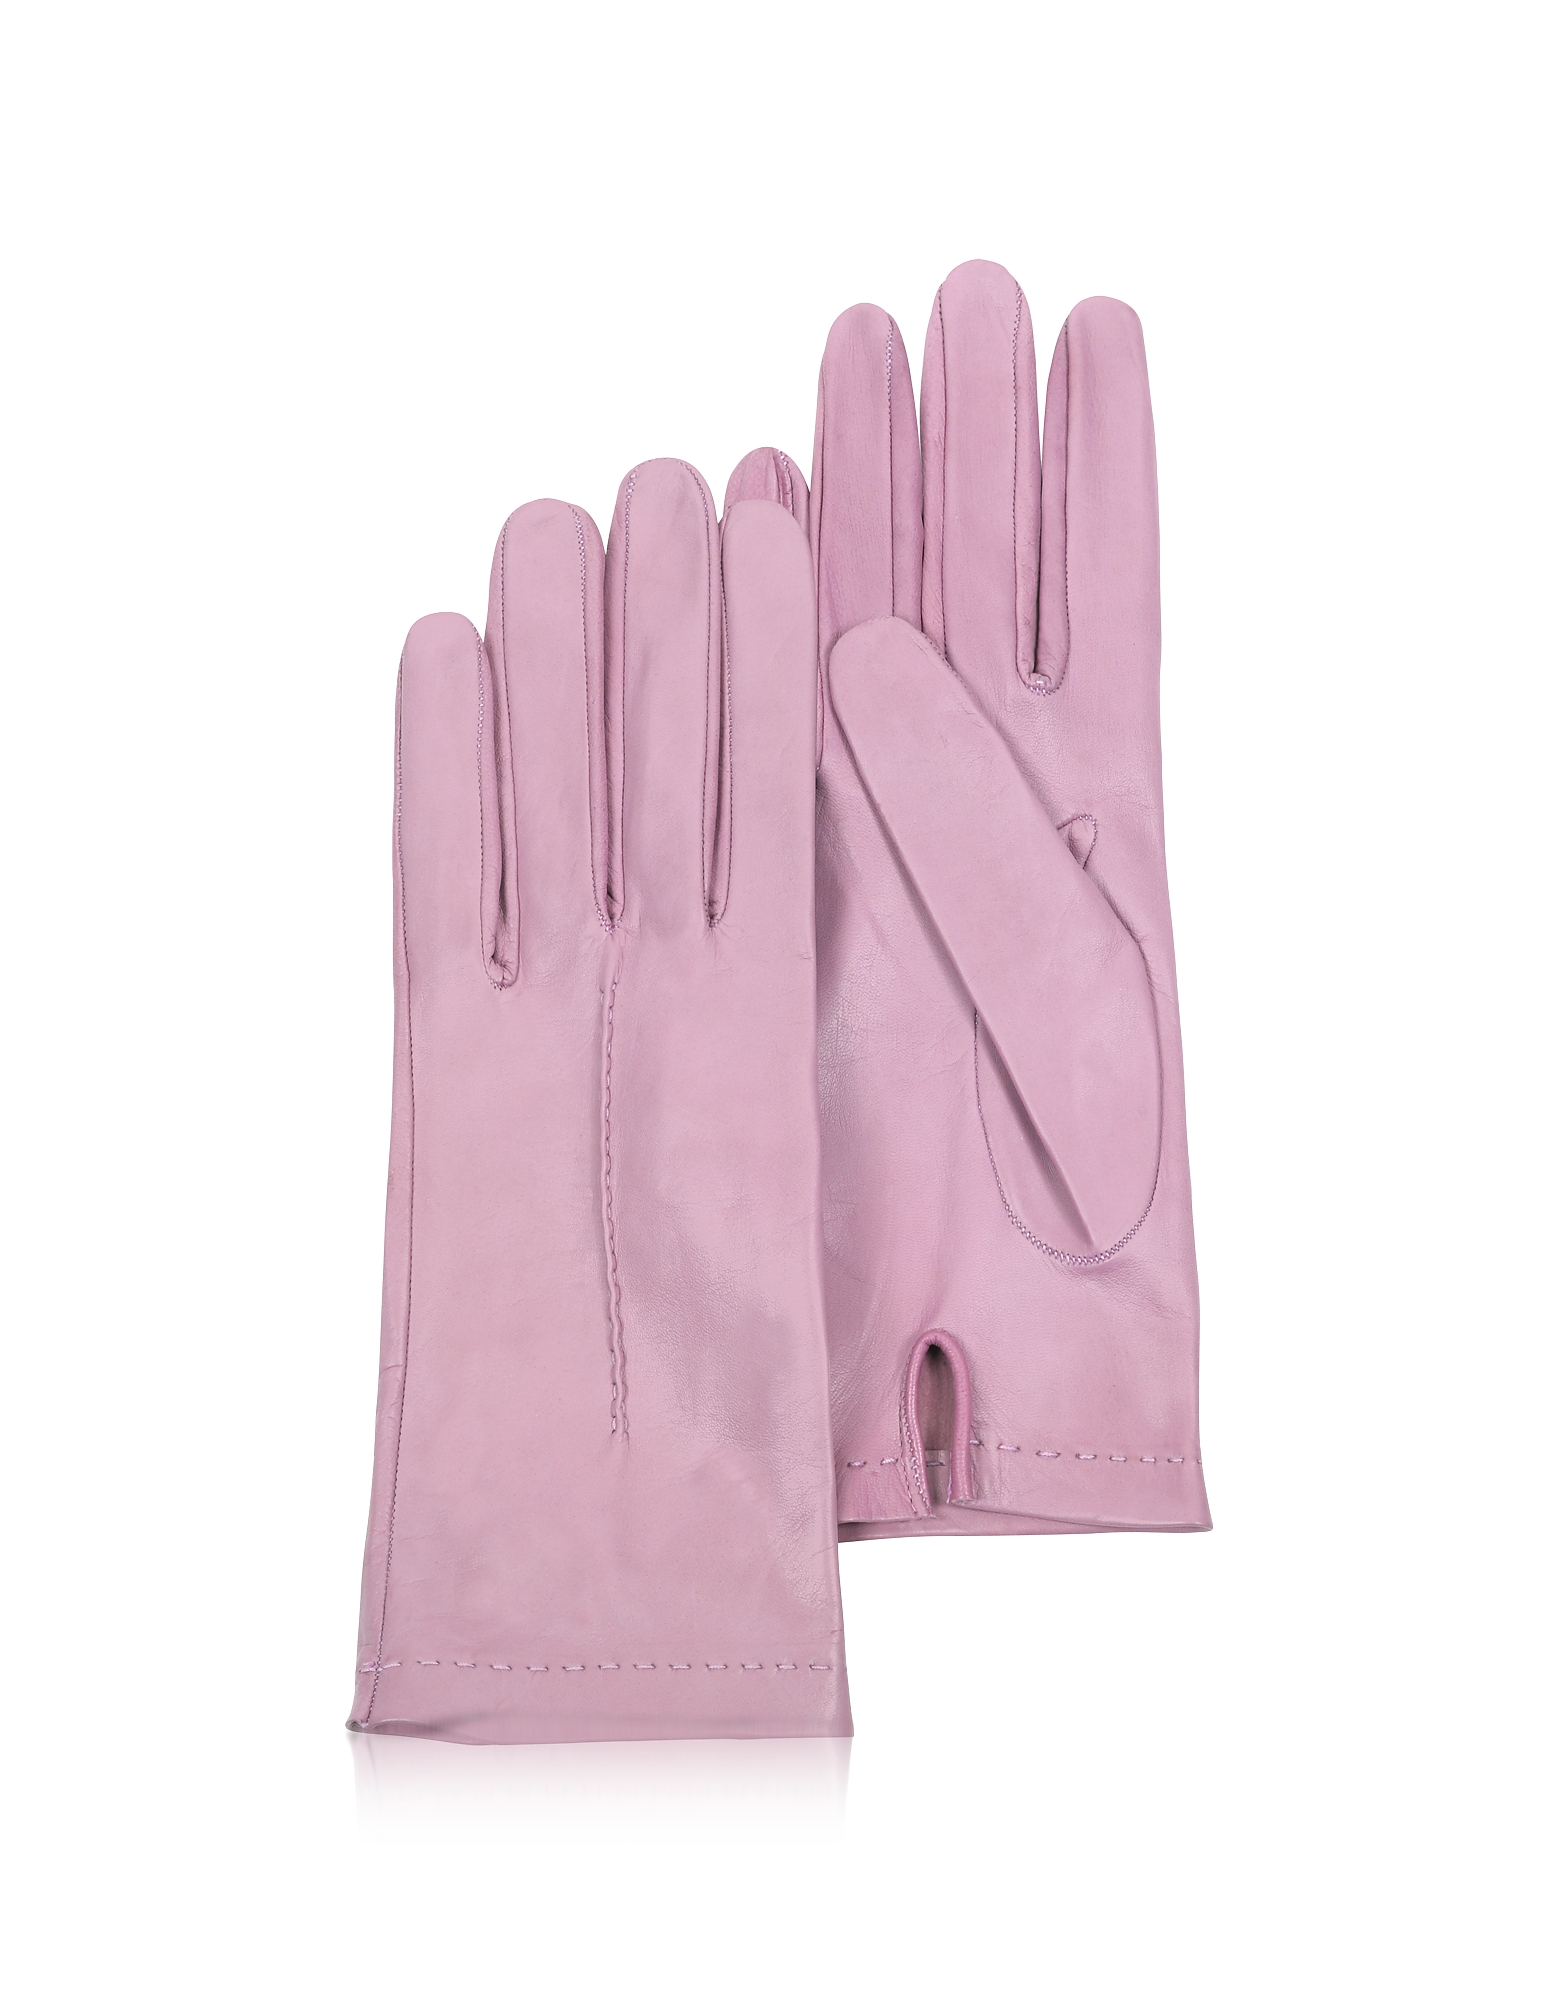 Women's Candy Pink Unlined Italian Leather Gloves